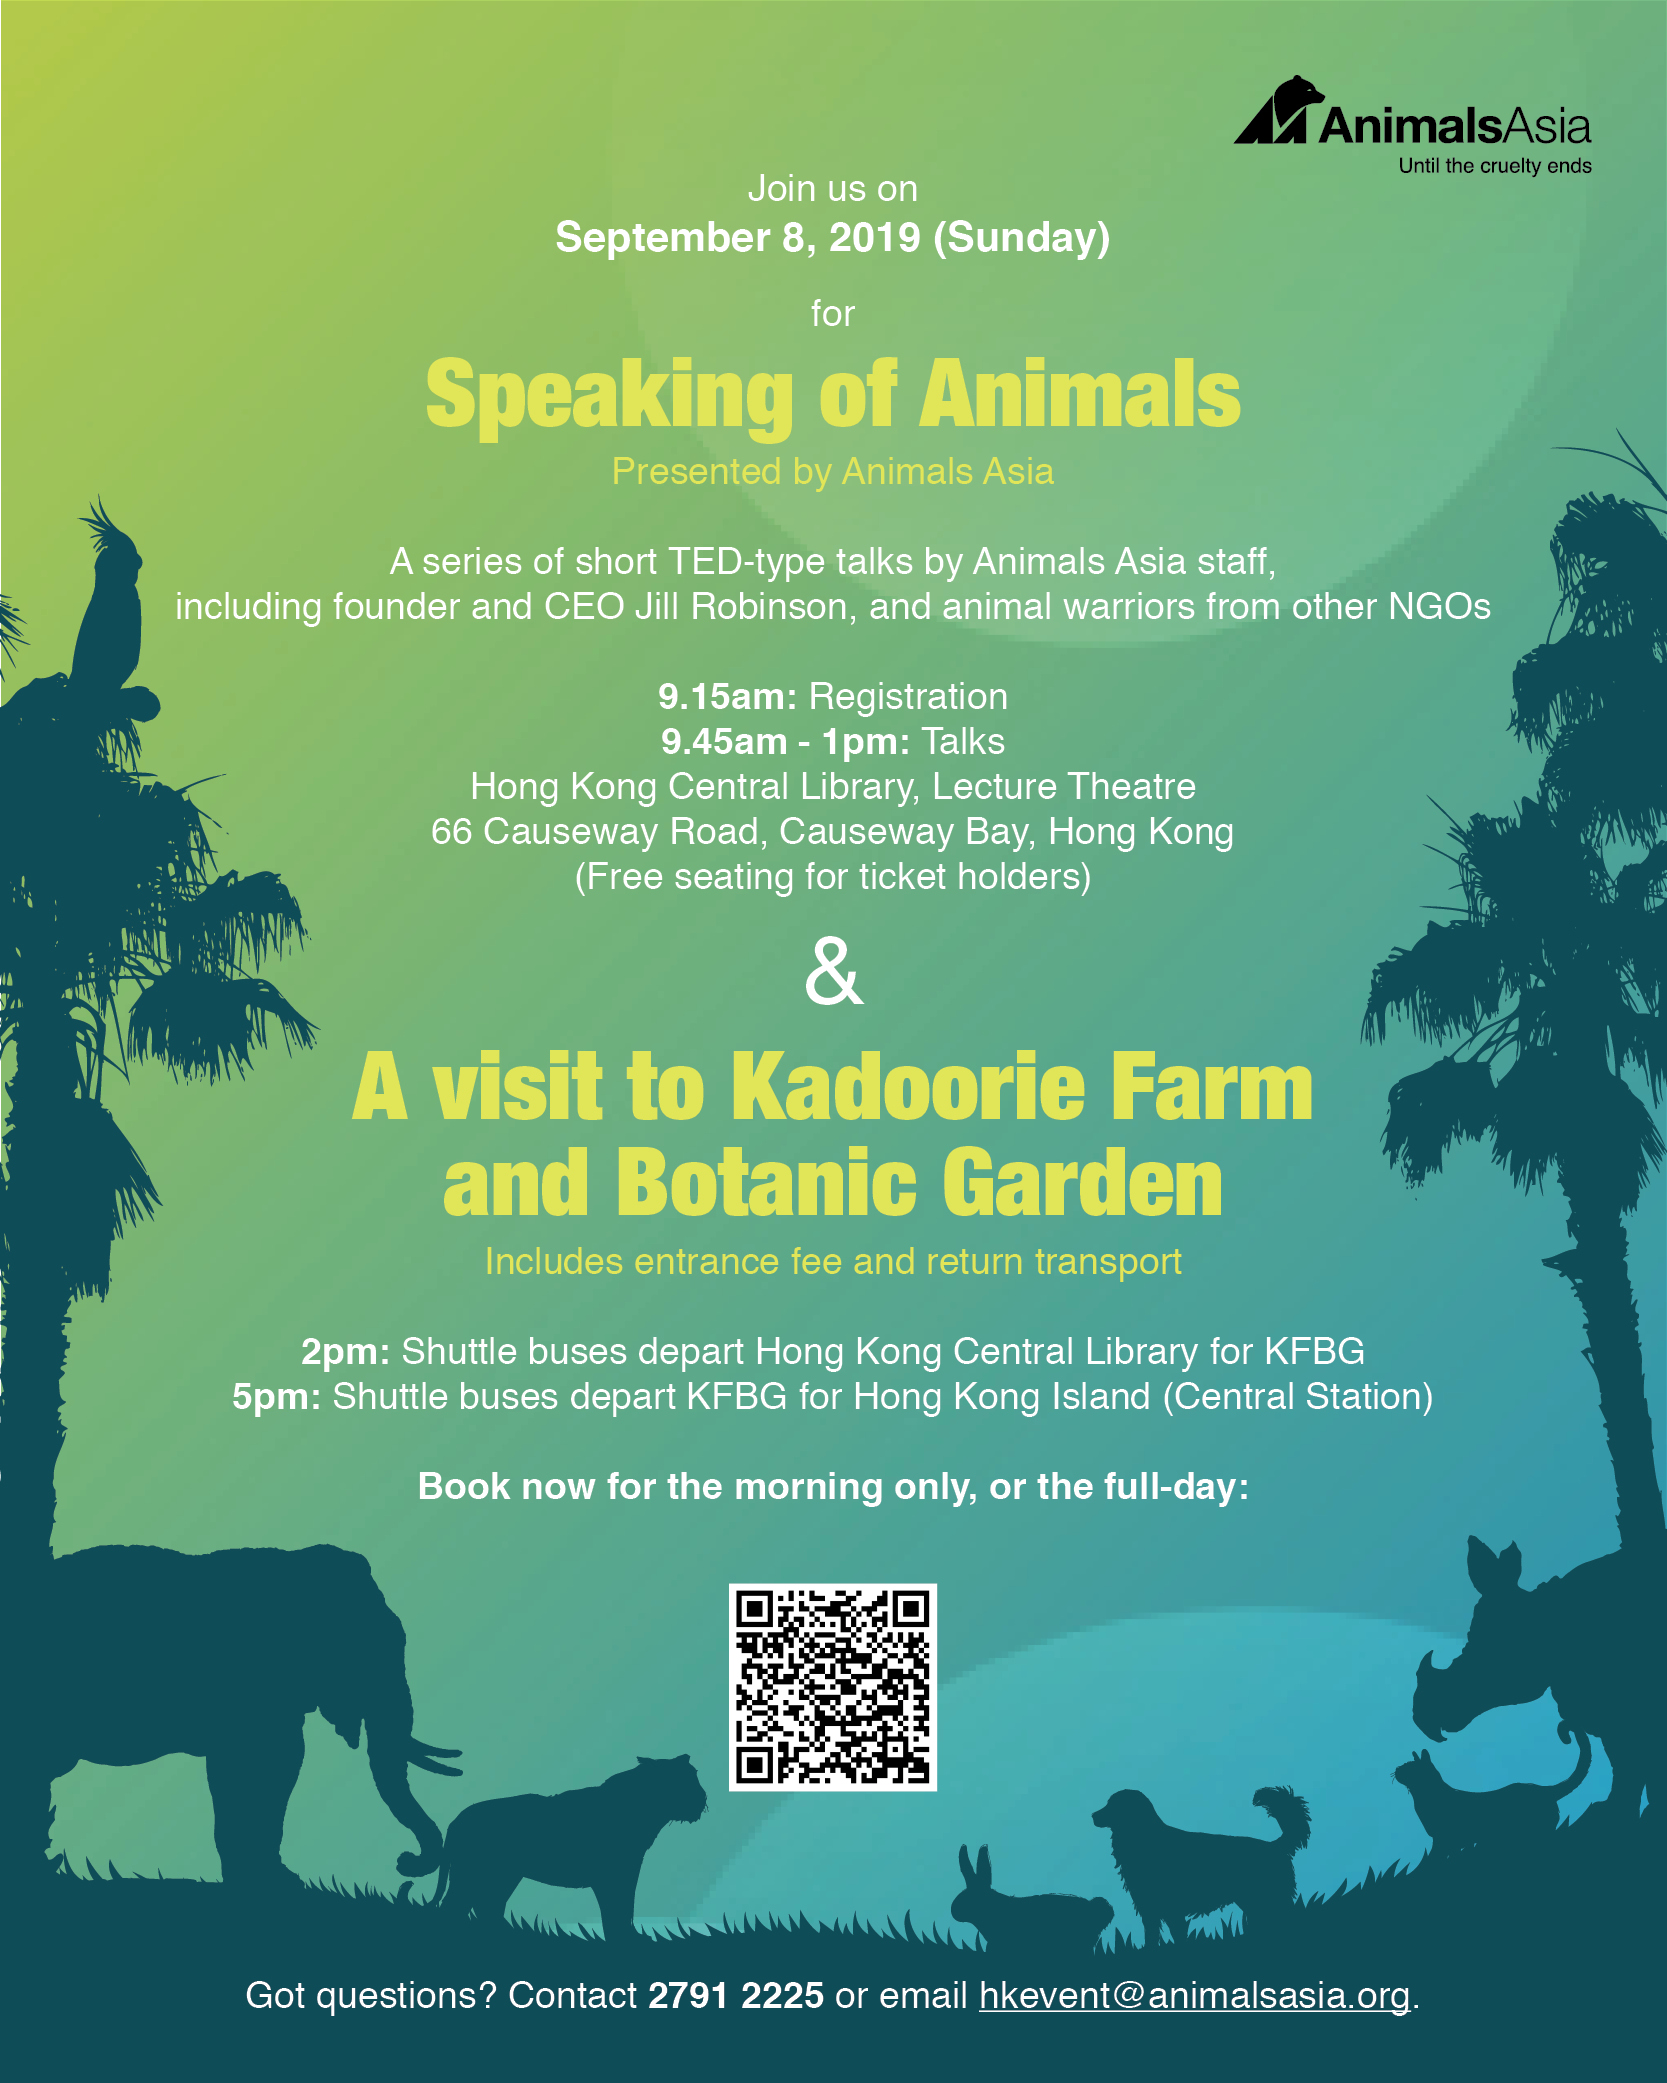 Speaking of Animals presented by Animals Asia